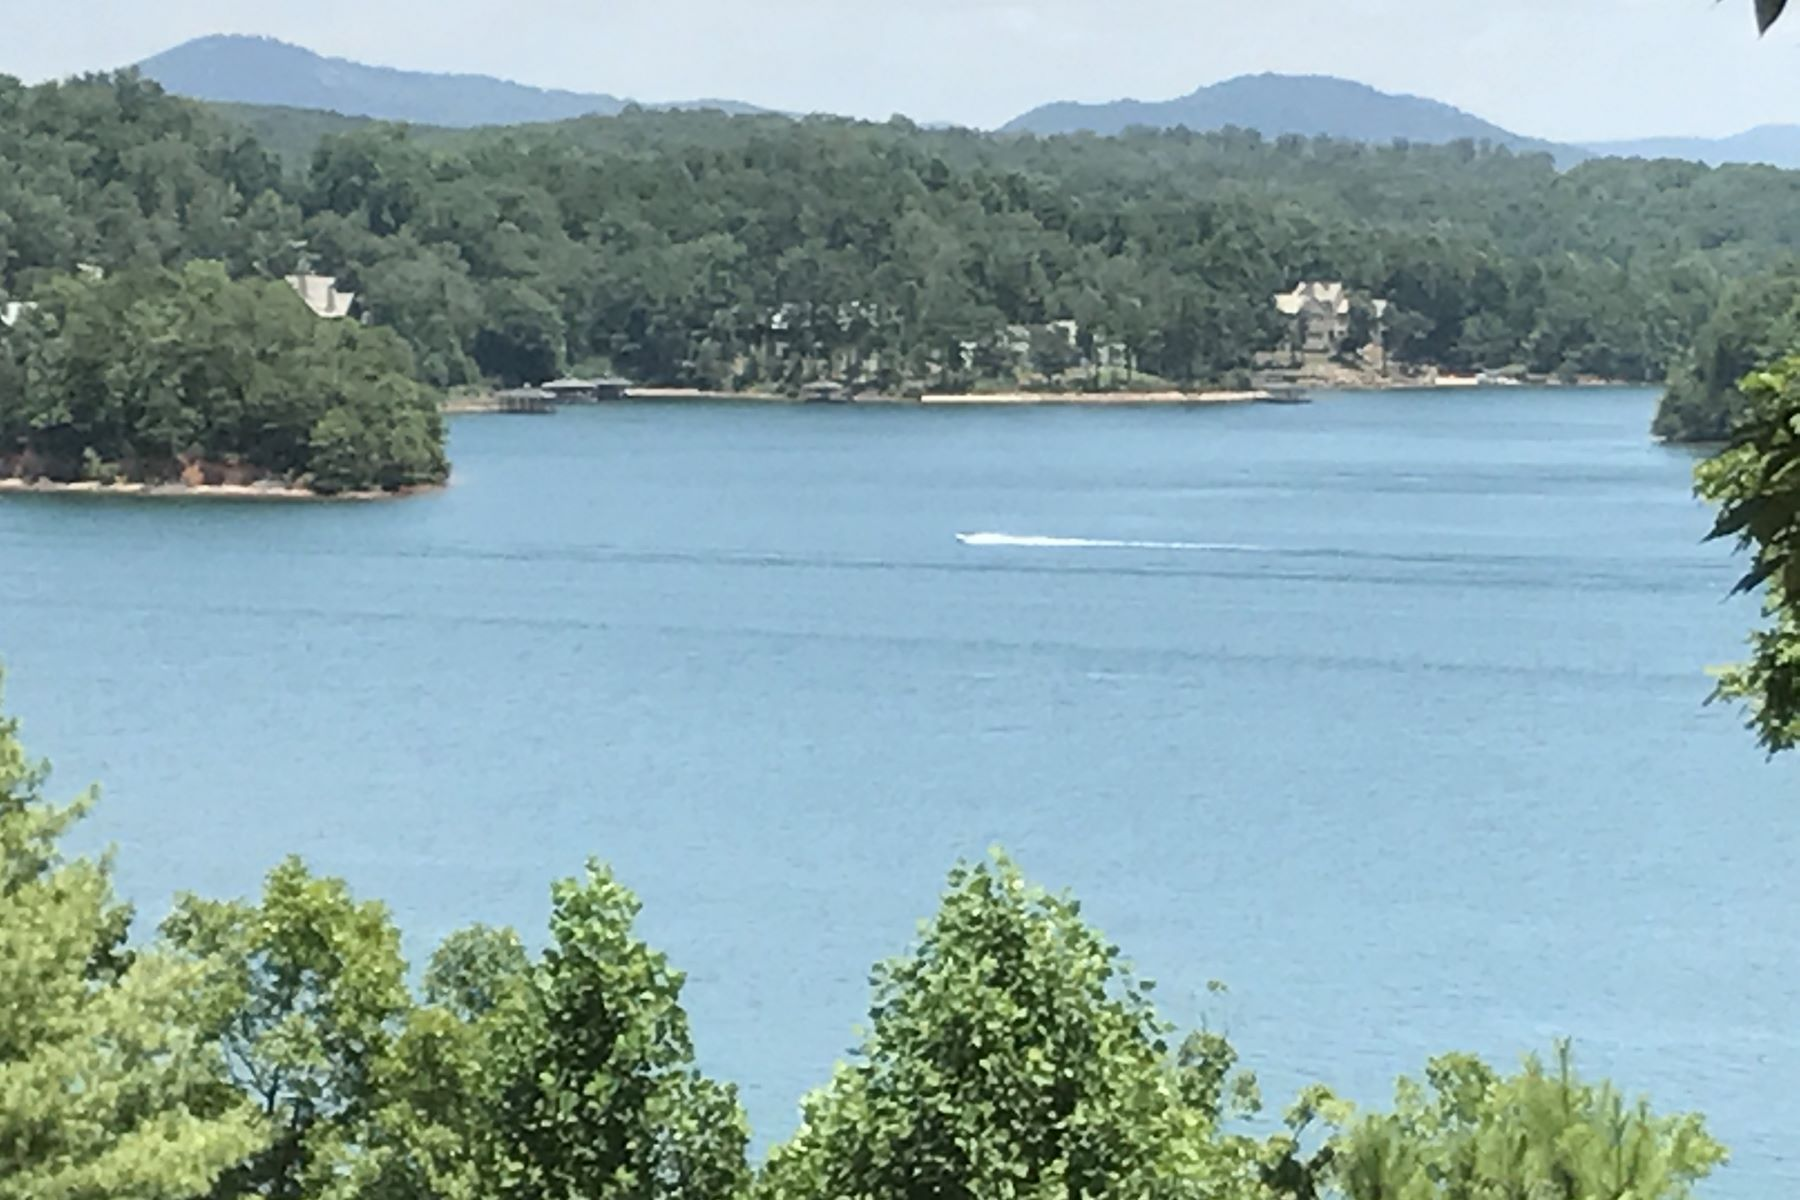 Land for Sale at Waterfront Lot with Views of Lake & Mountains! JC8 The Cliffs At Keowee Falls, Salem, South Carolina, 29676 United States